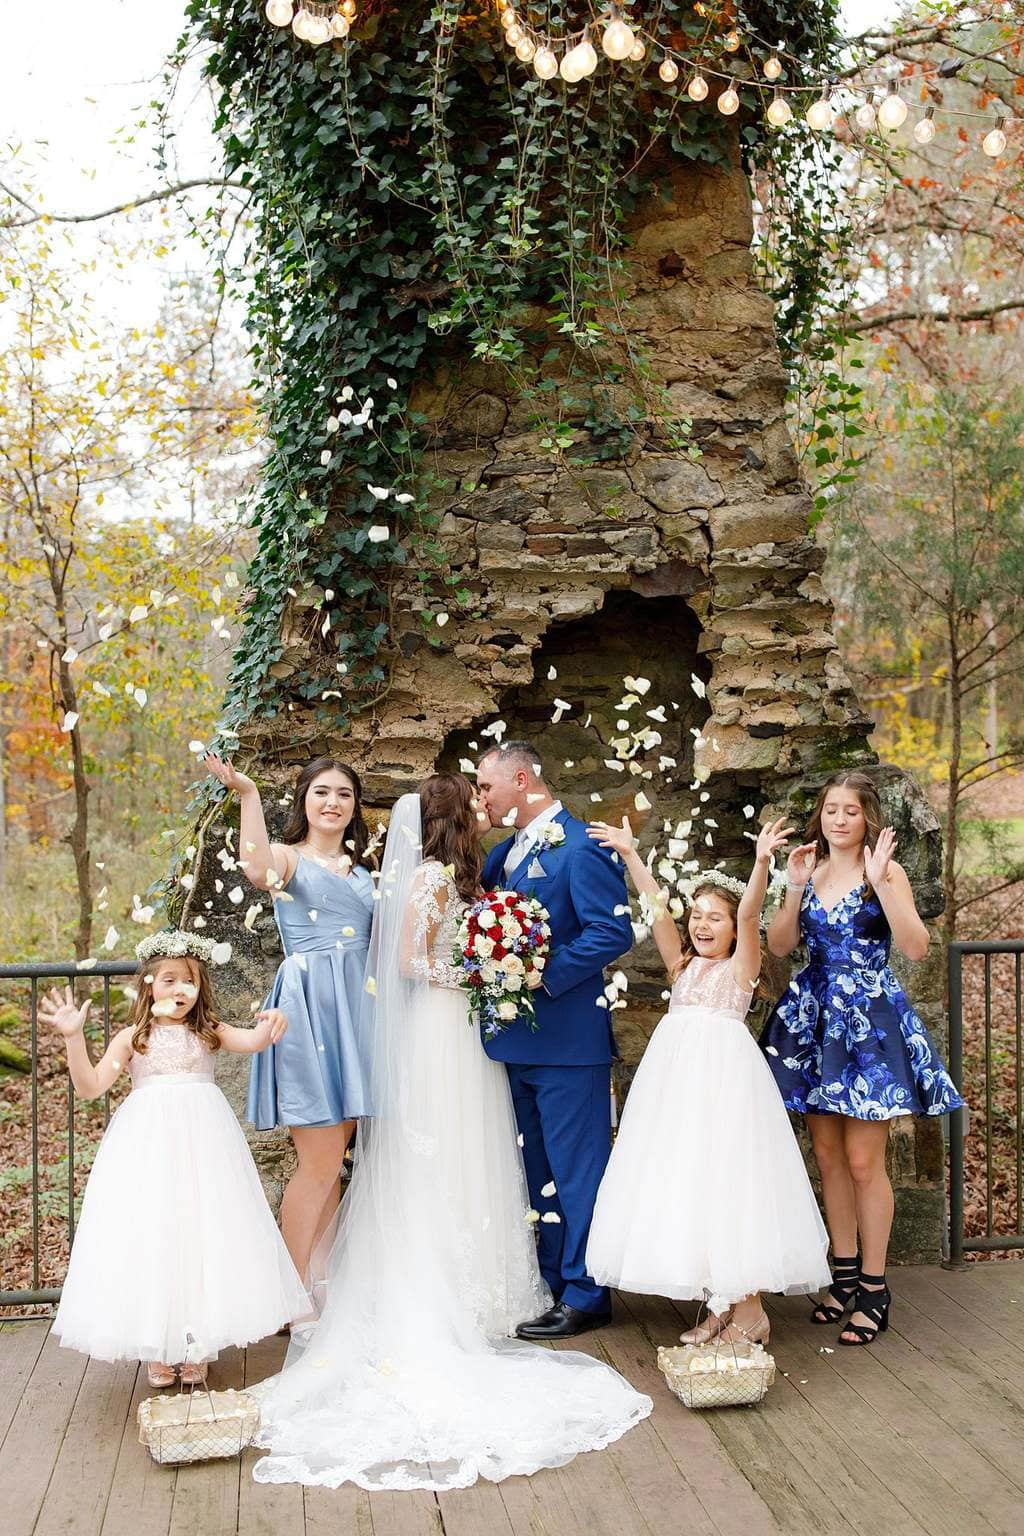 Tossing rose pedals with flower girls